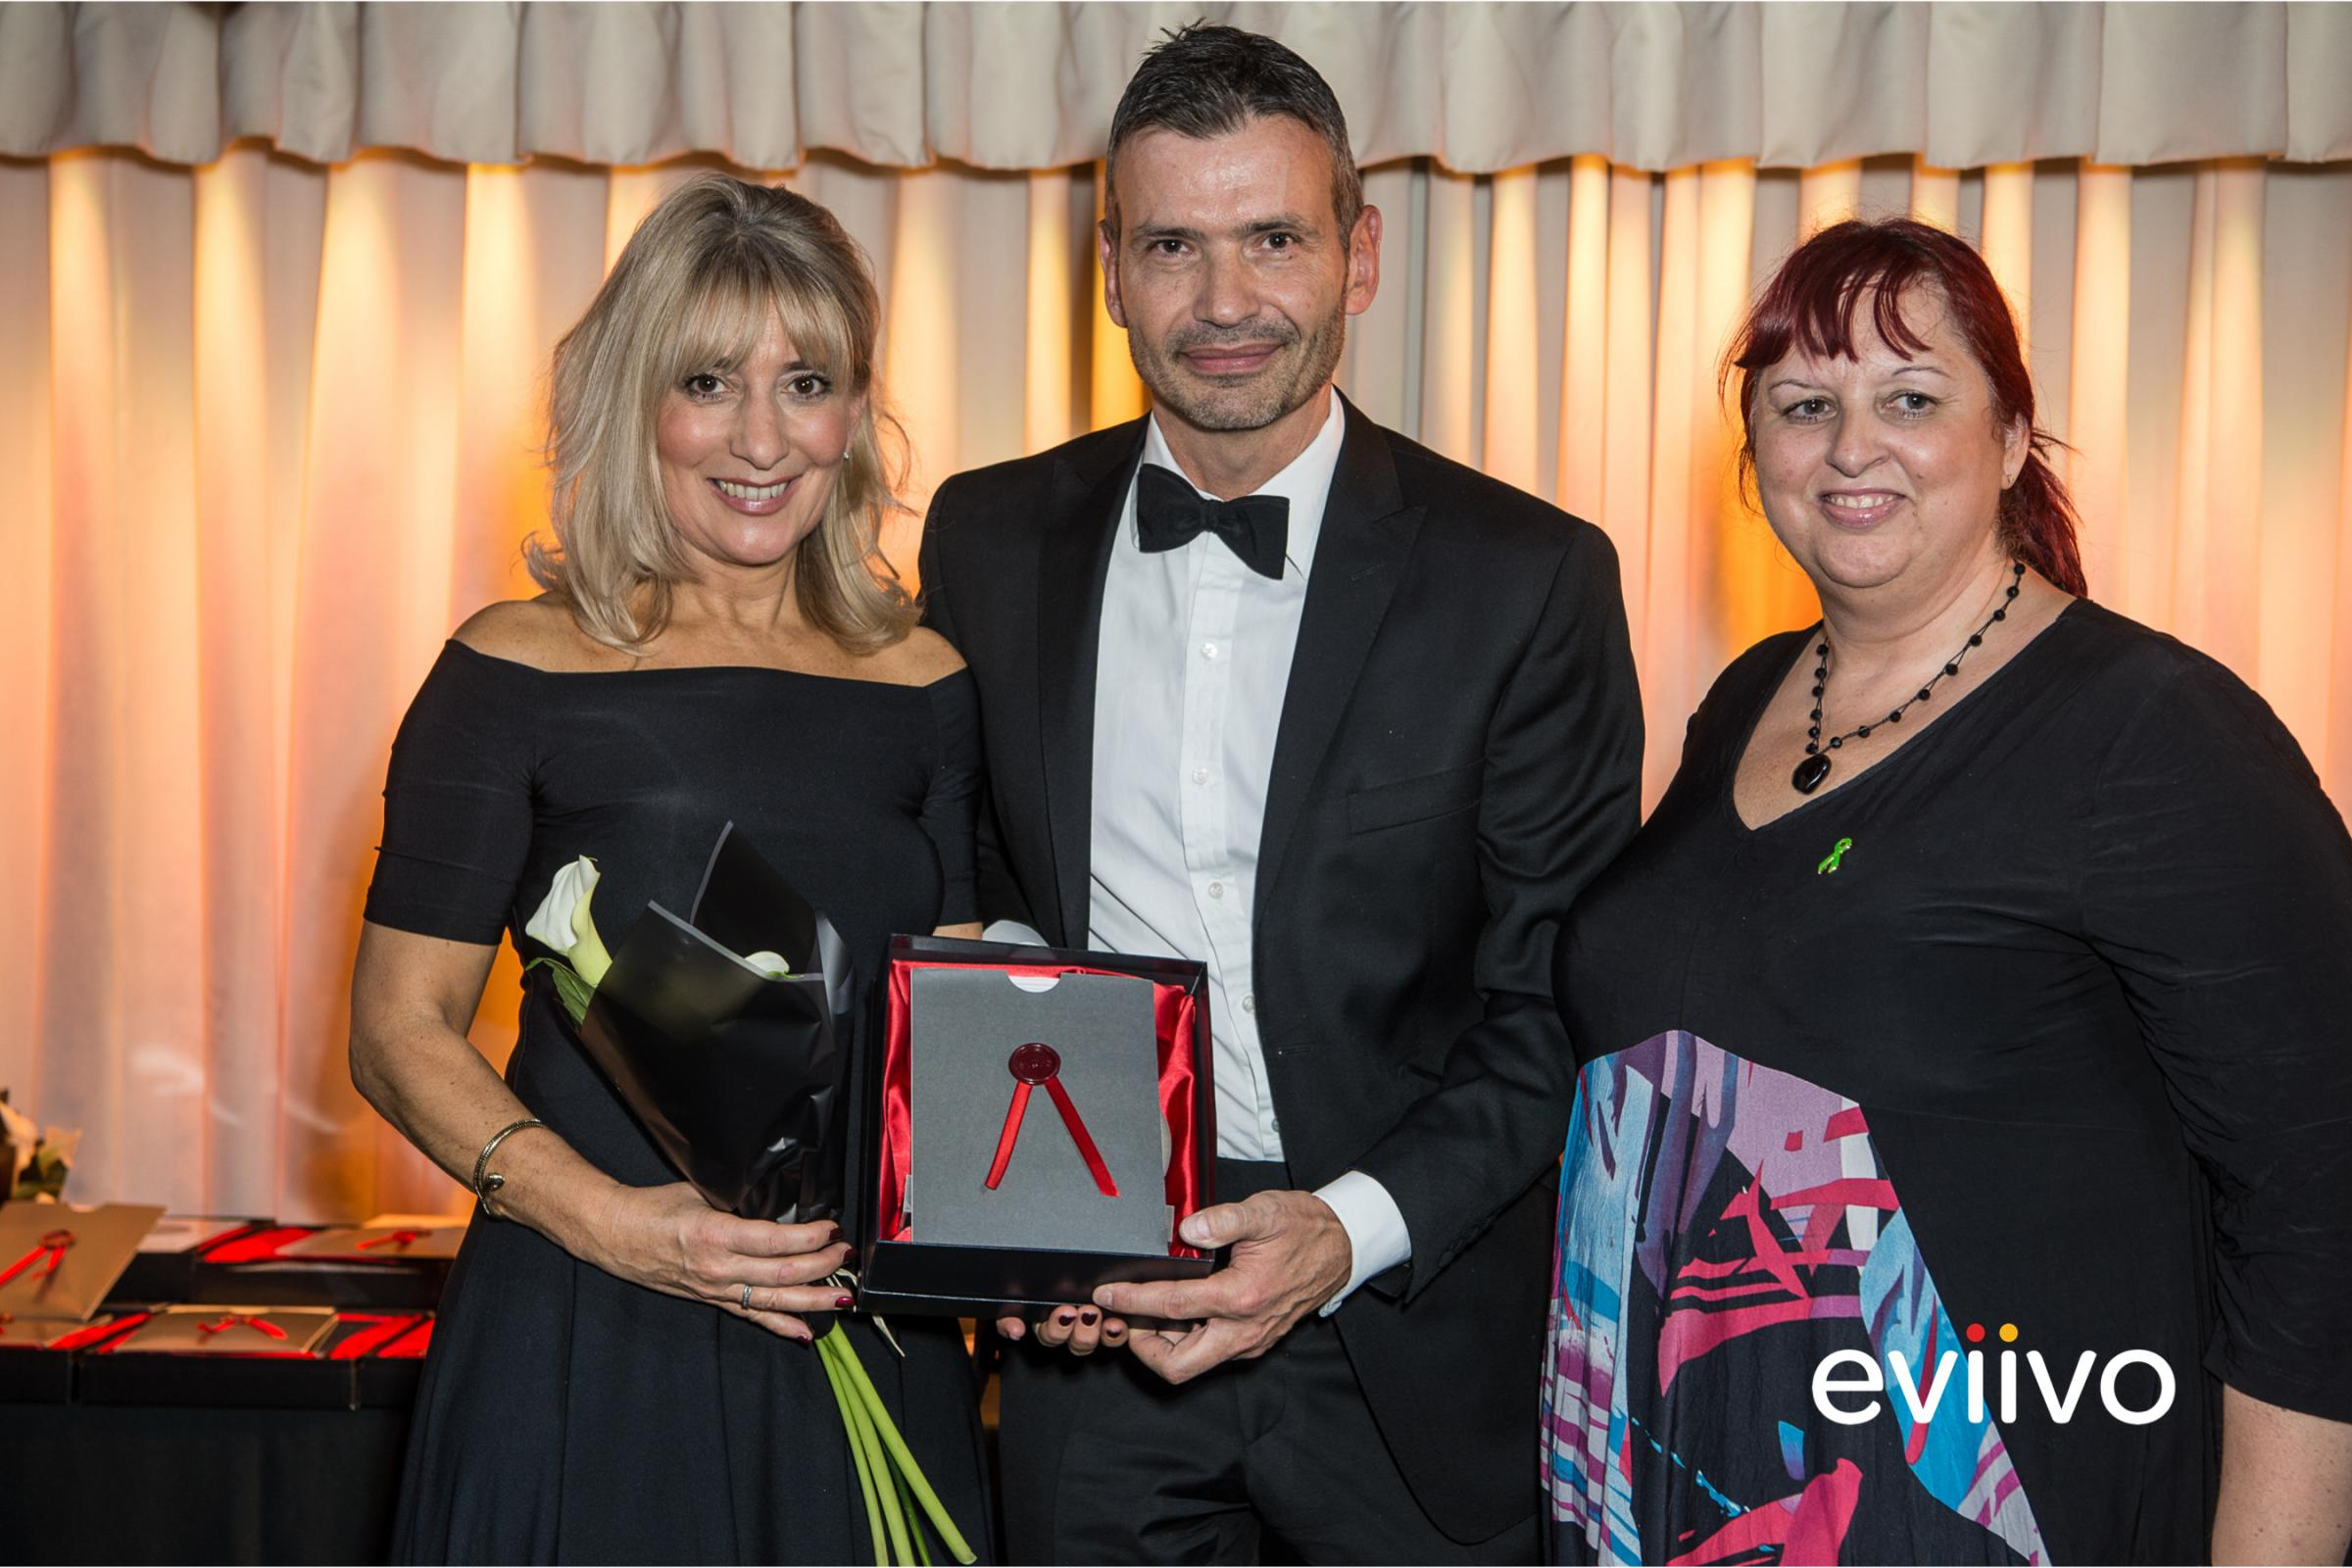 Sarah Alexiou (left) owner Woolmarket House, Chipping Campden, receiving the award for Most Beautifully Presented property category at the eviivo Awards 2018